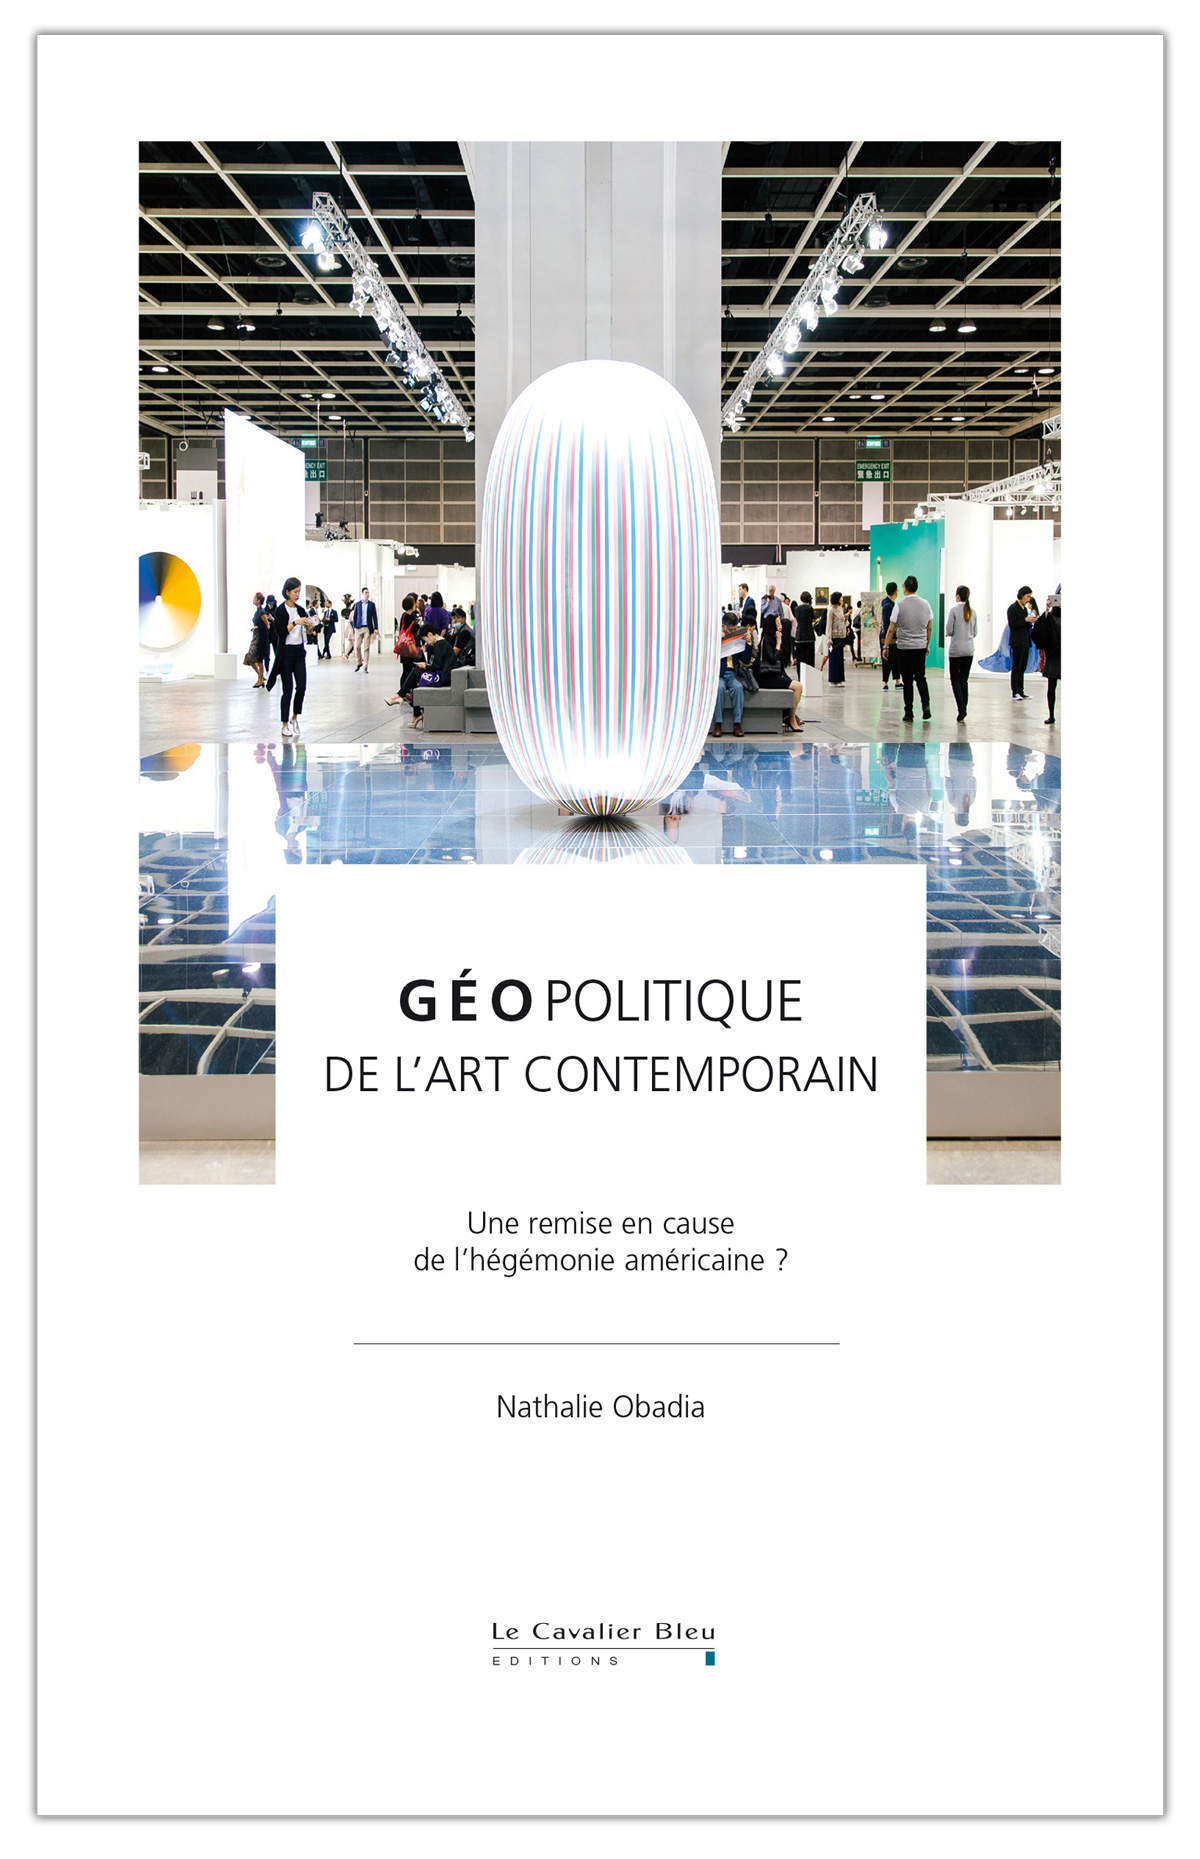 Géopolitique de l'art contemporain - Nathalie Obadia